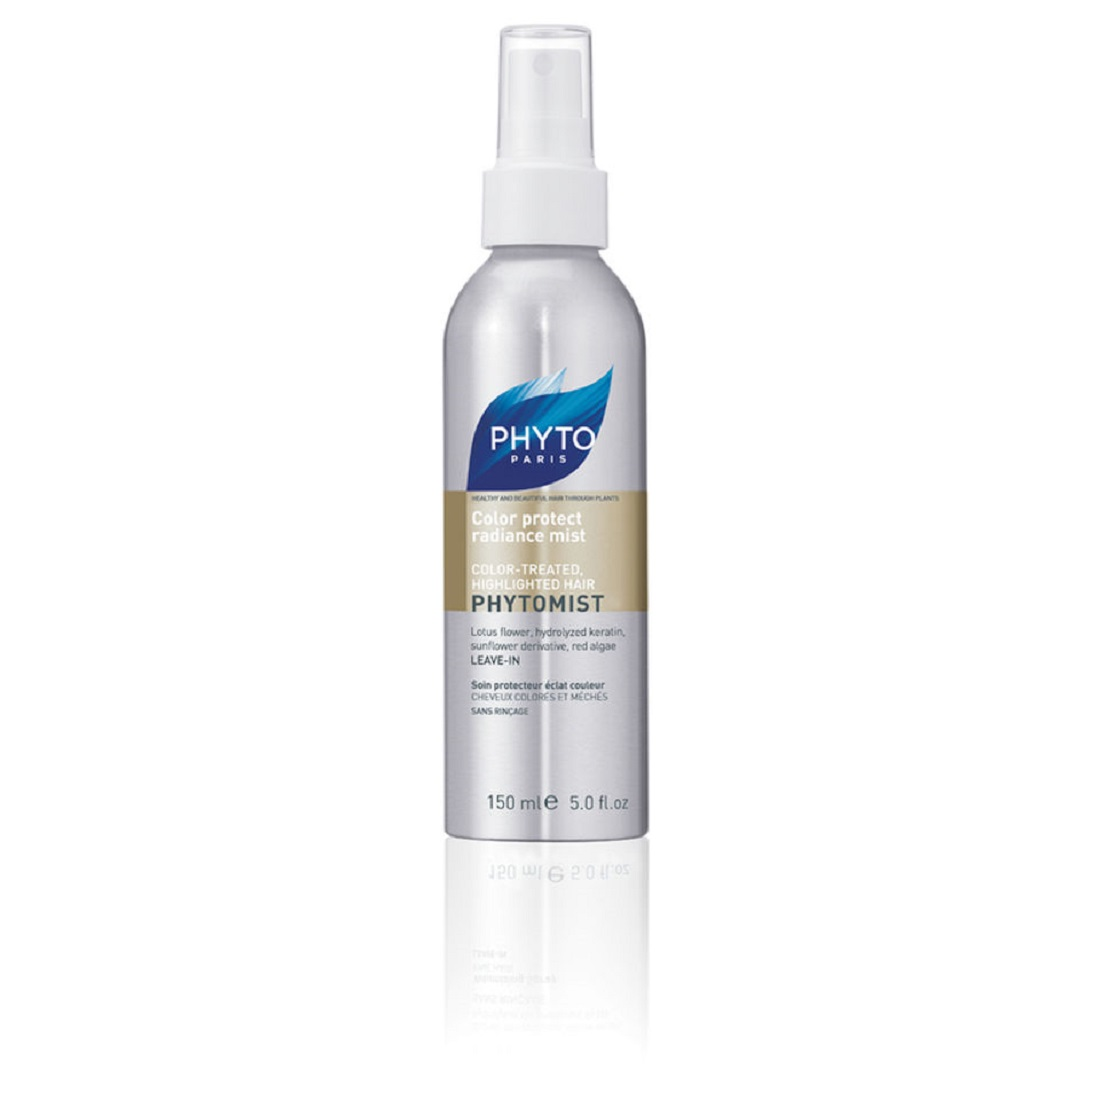 Phyto Phytomist Color Protect Radiance Mist For Color Treated Hair